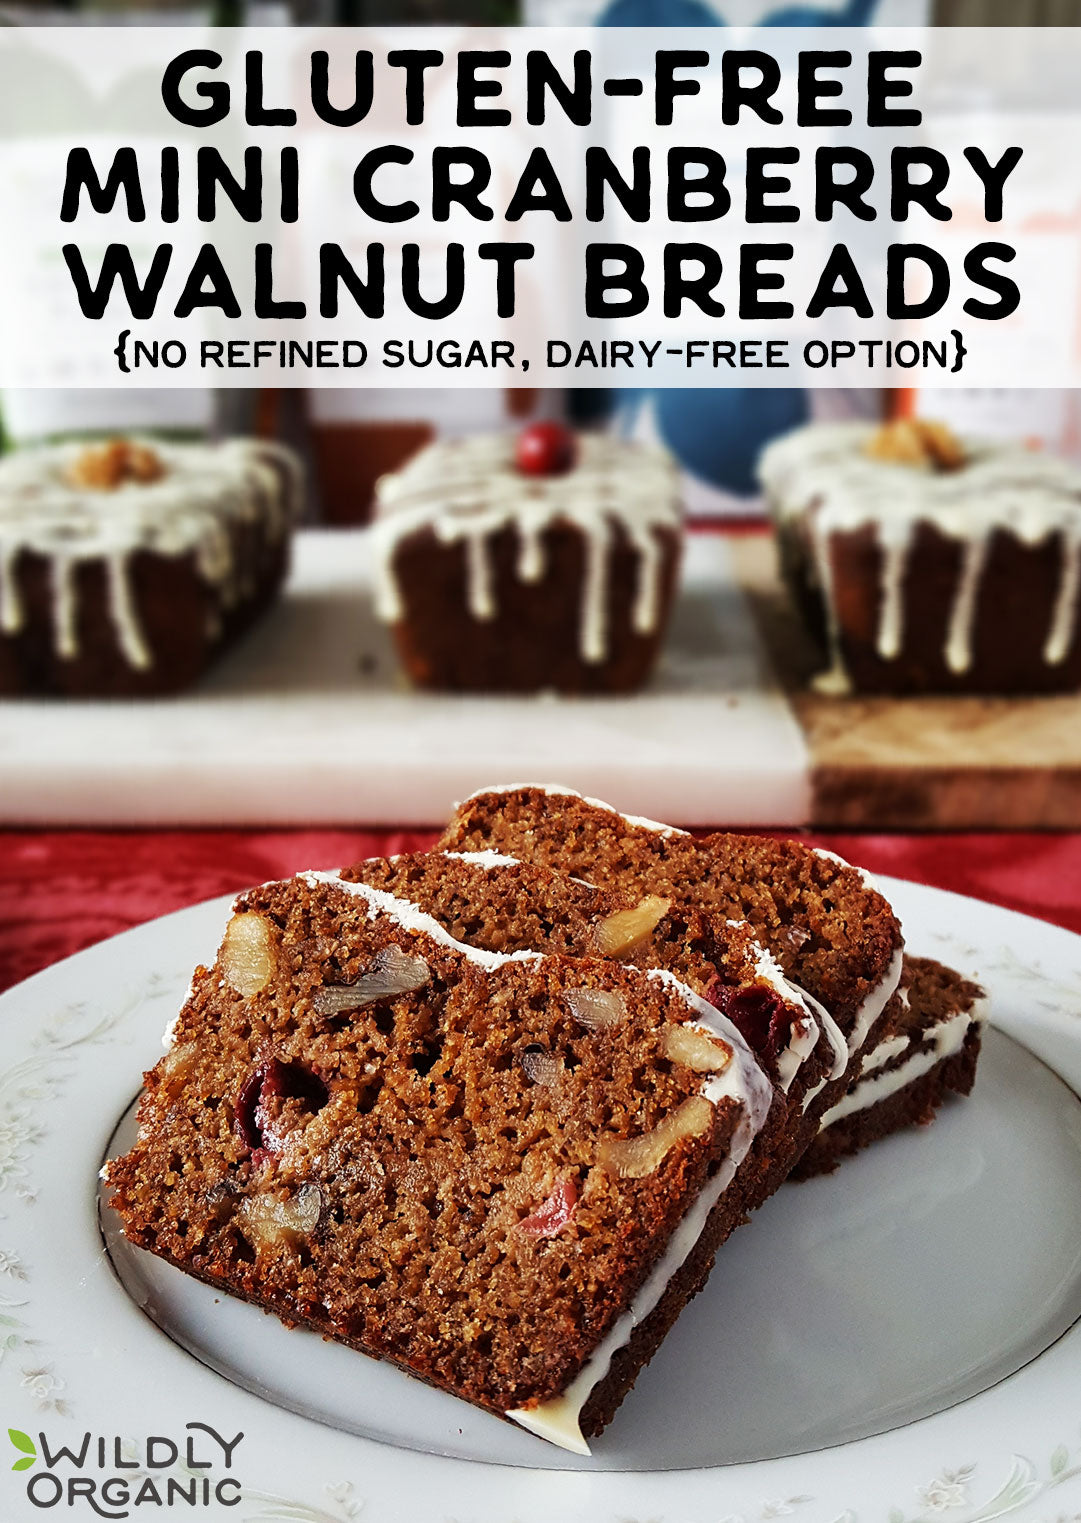 Photo of gluten-free mini cranberry walnut breads, with some sliced